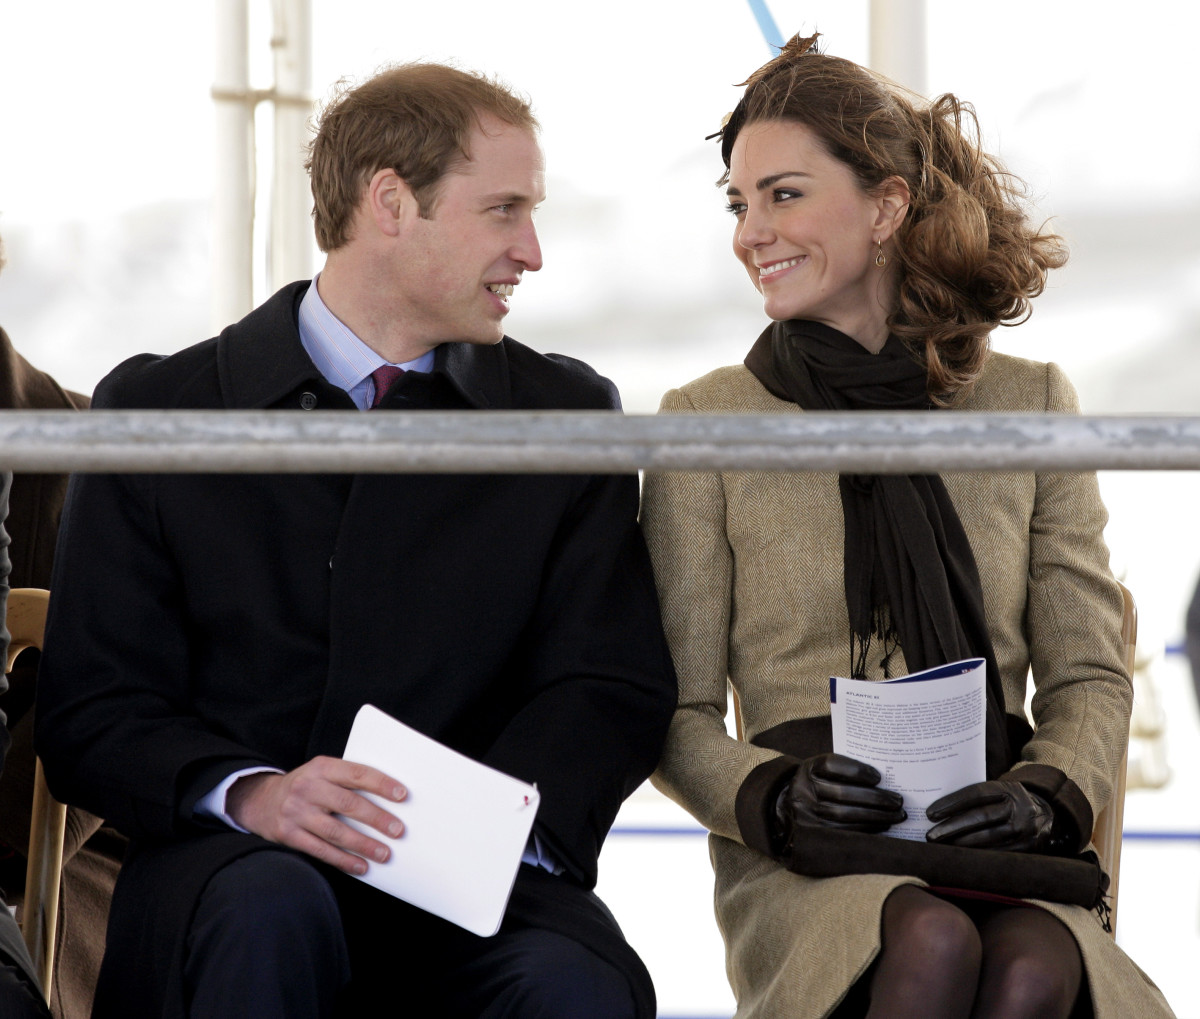 Will and Kate: The couple a few months before their wedding continue to look smitten. (Photo by Indigo) (Photo: Getty Images)